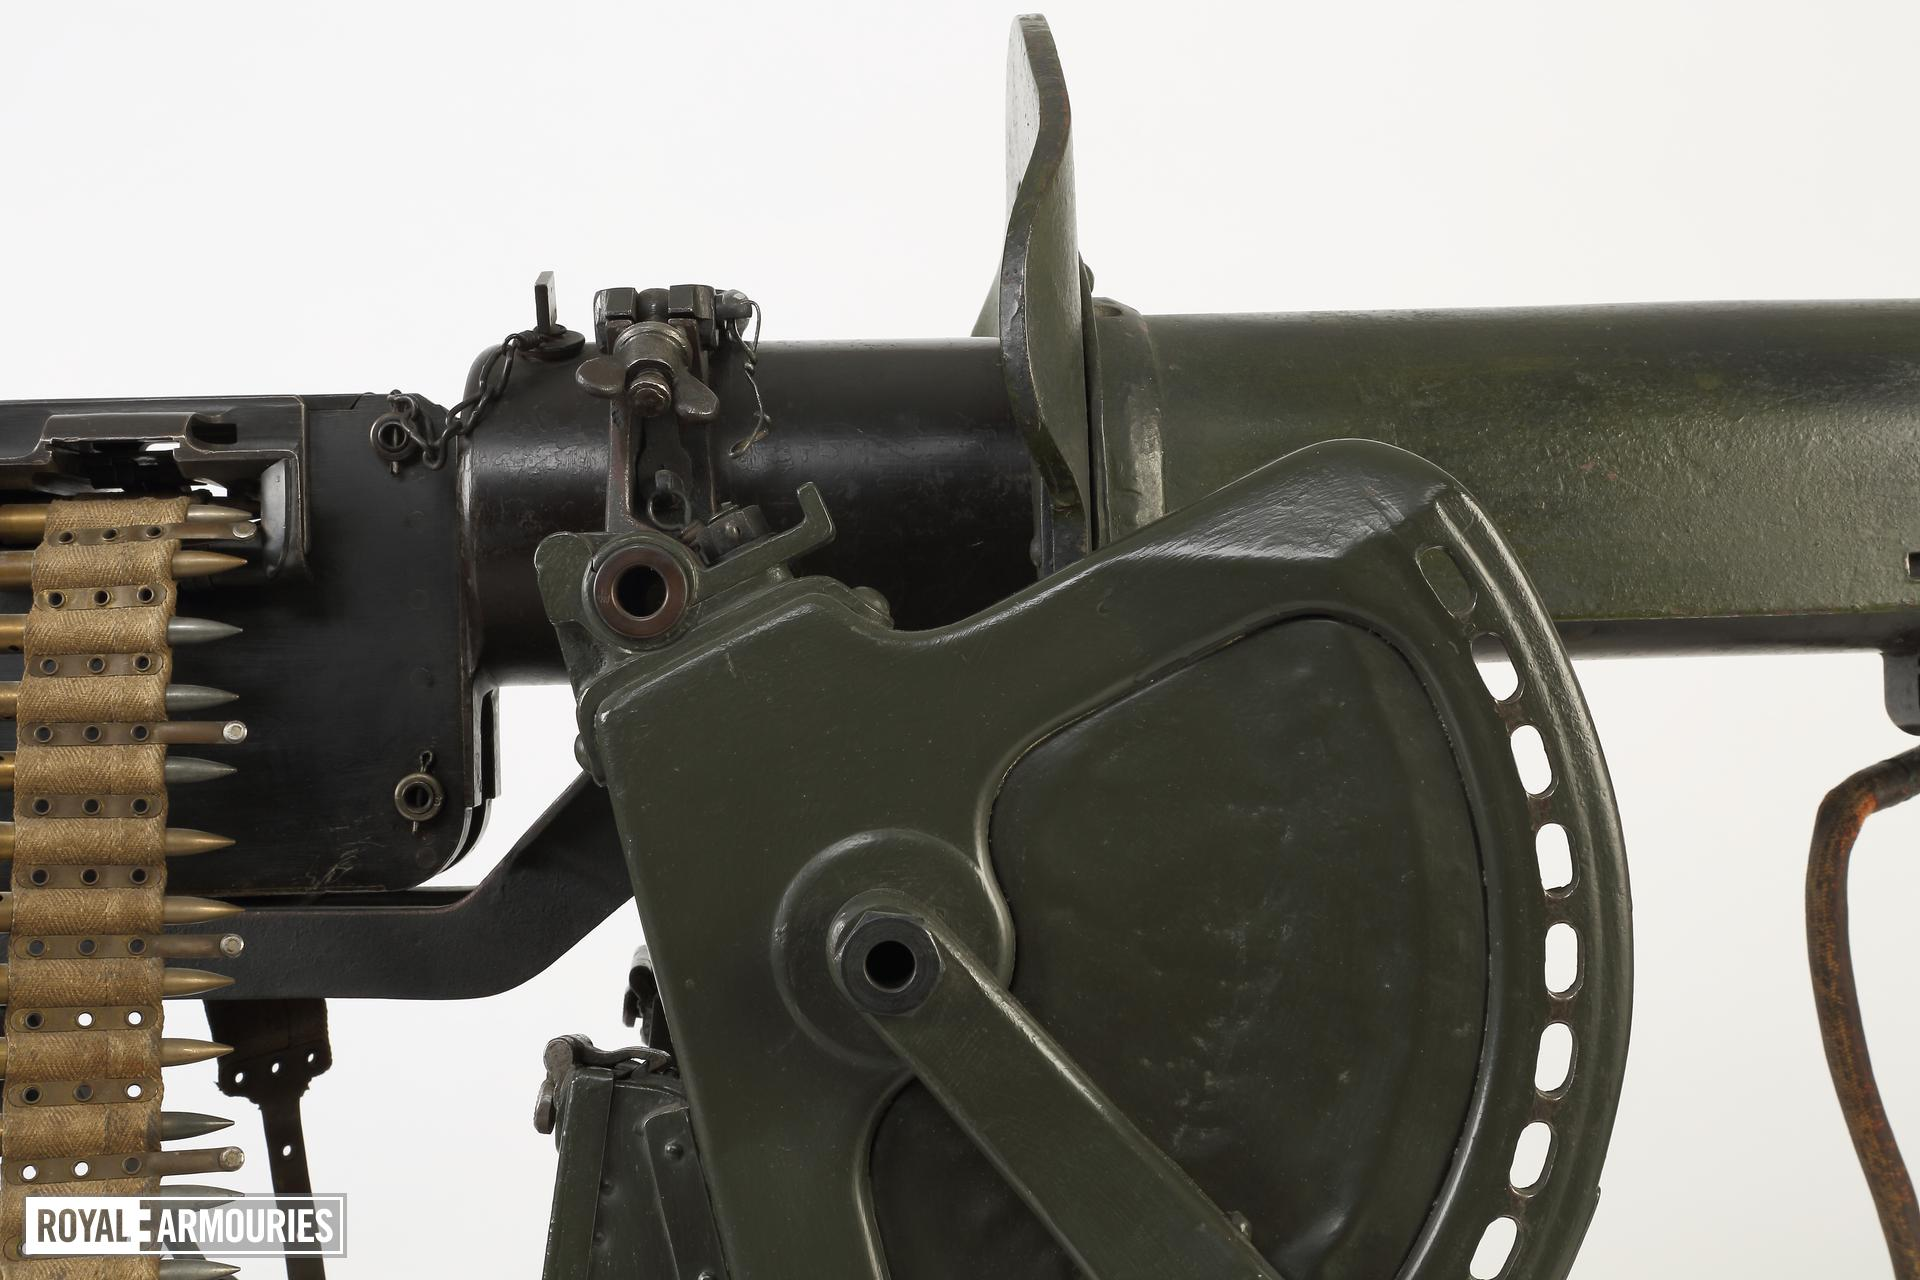 Maxim MG 08 centrefire automatic belt-fed machine gun (XII.11212) with sled type mount (PR.74), Germany, early 20th century.